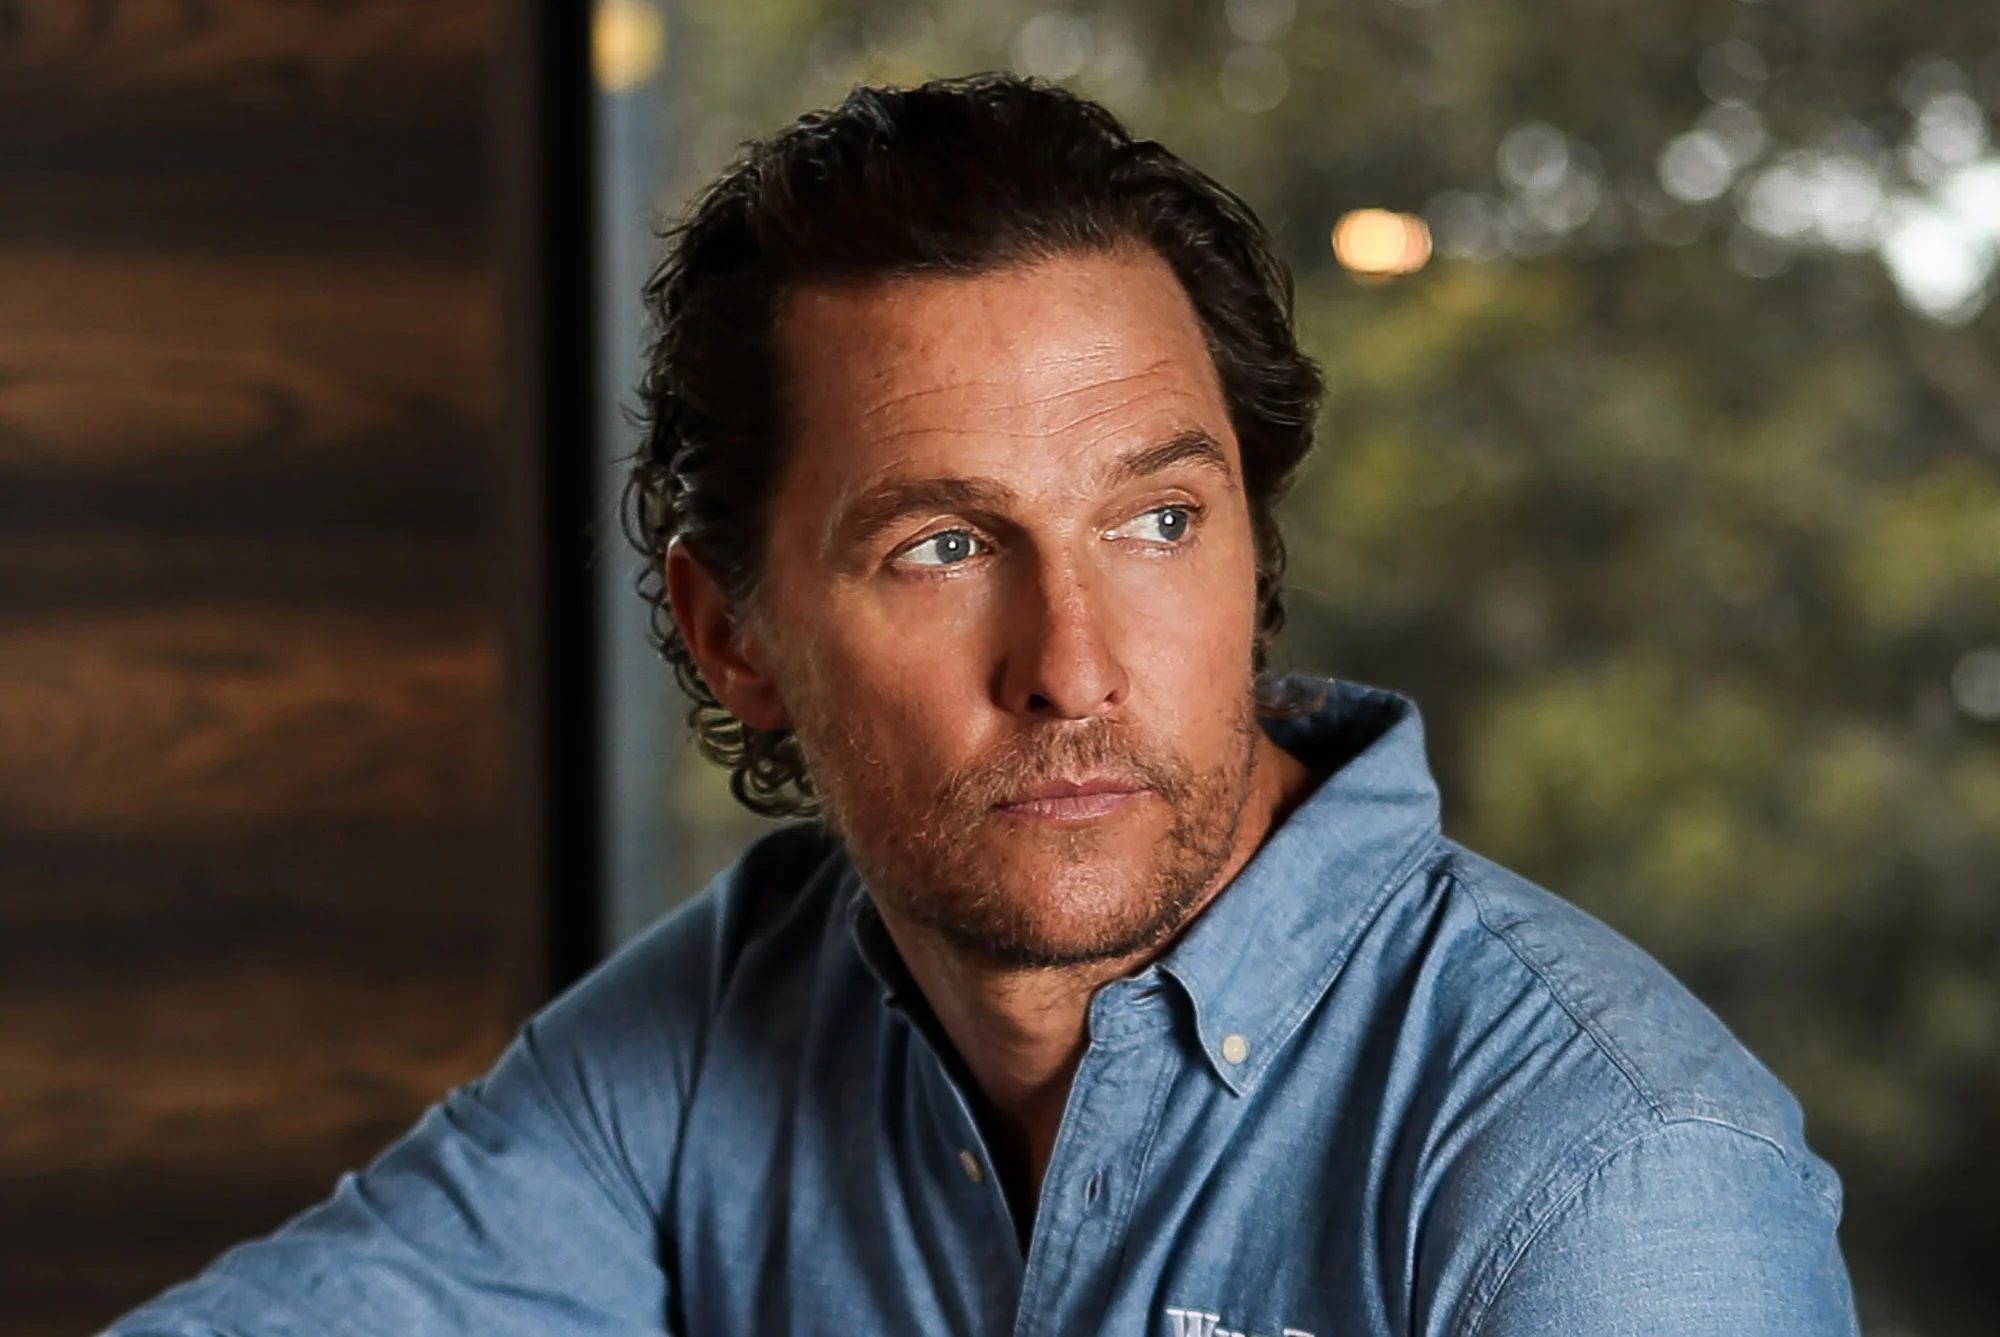 Matthew McConaughey [Source: Vanity Fair]